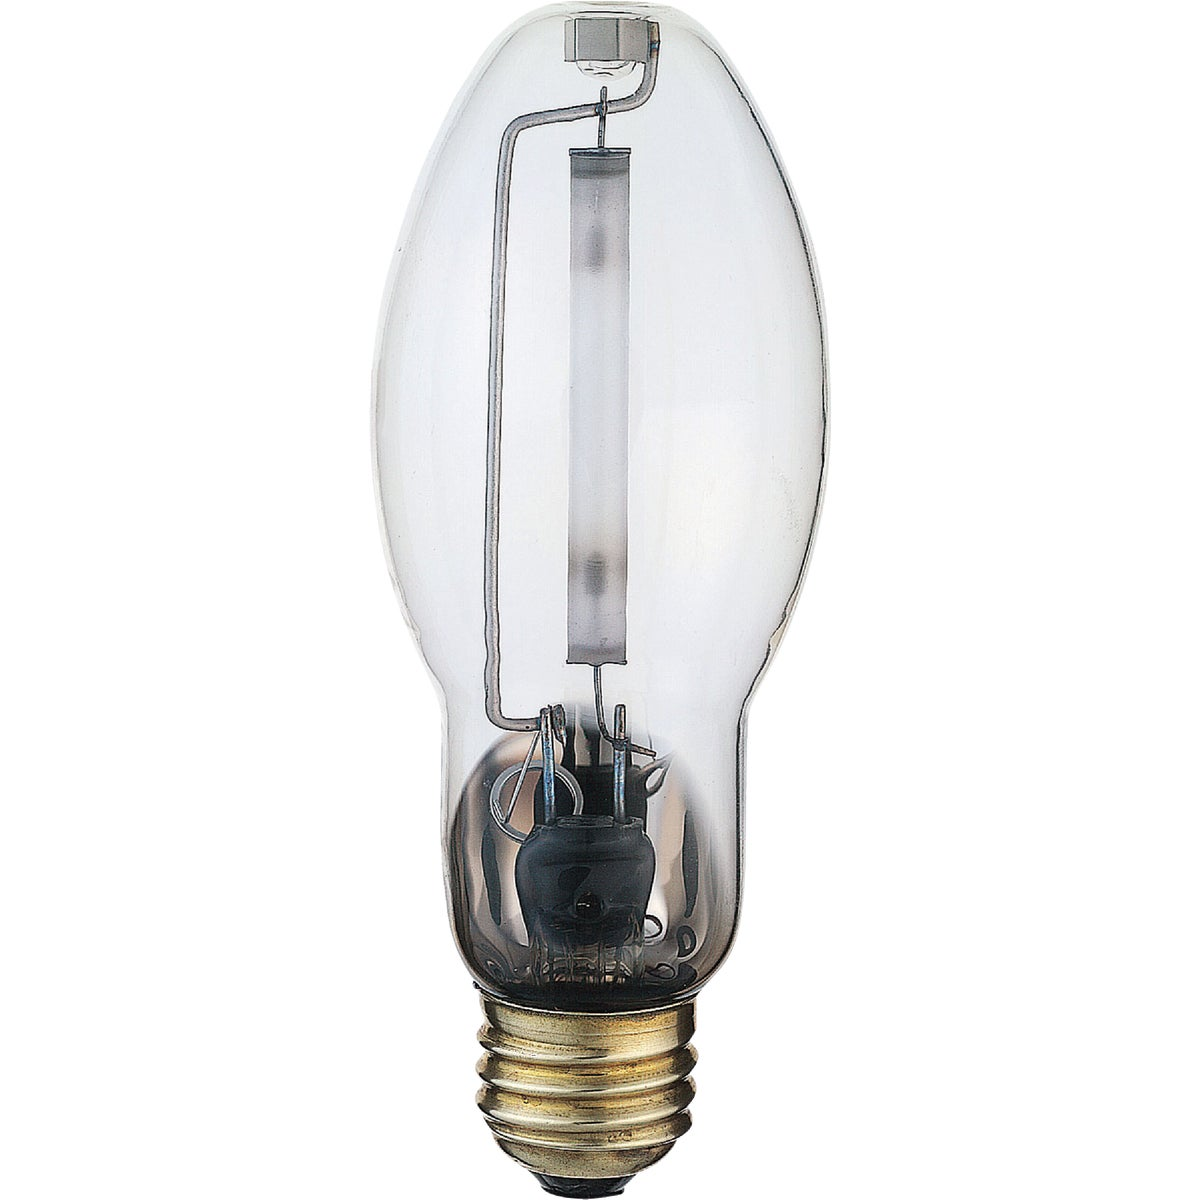 100W MG BASE SODIUM BULB